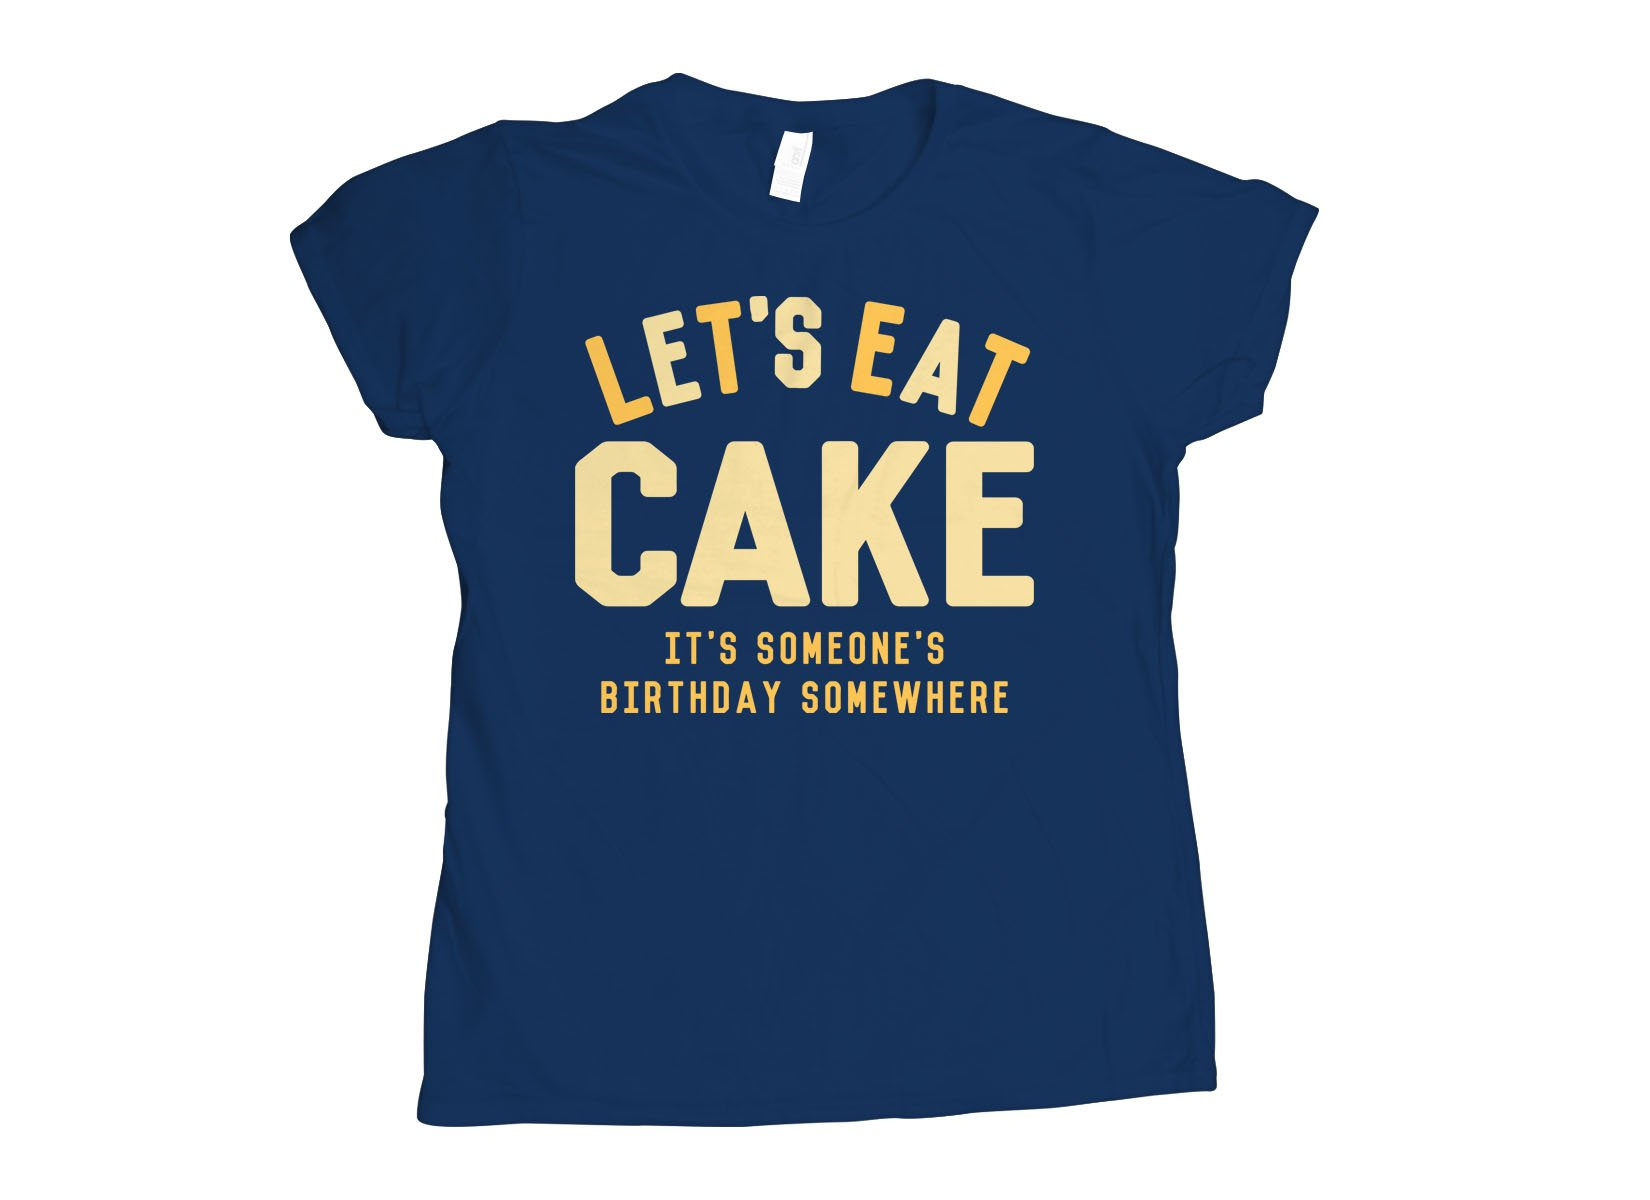 Let's Eat Cake on Womens T-Shirt